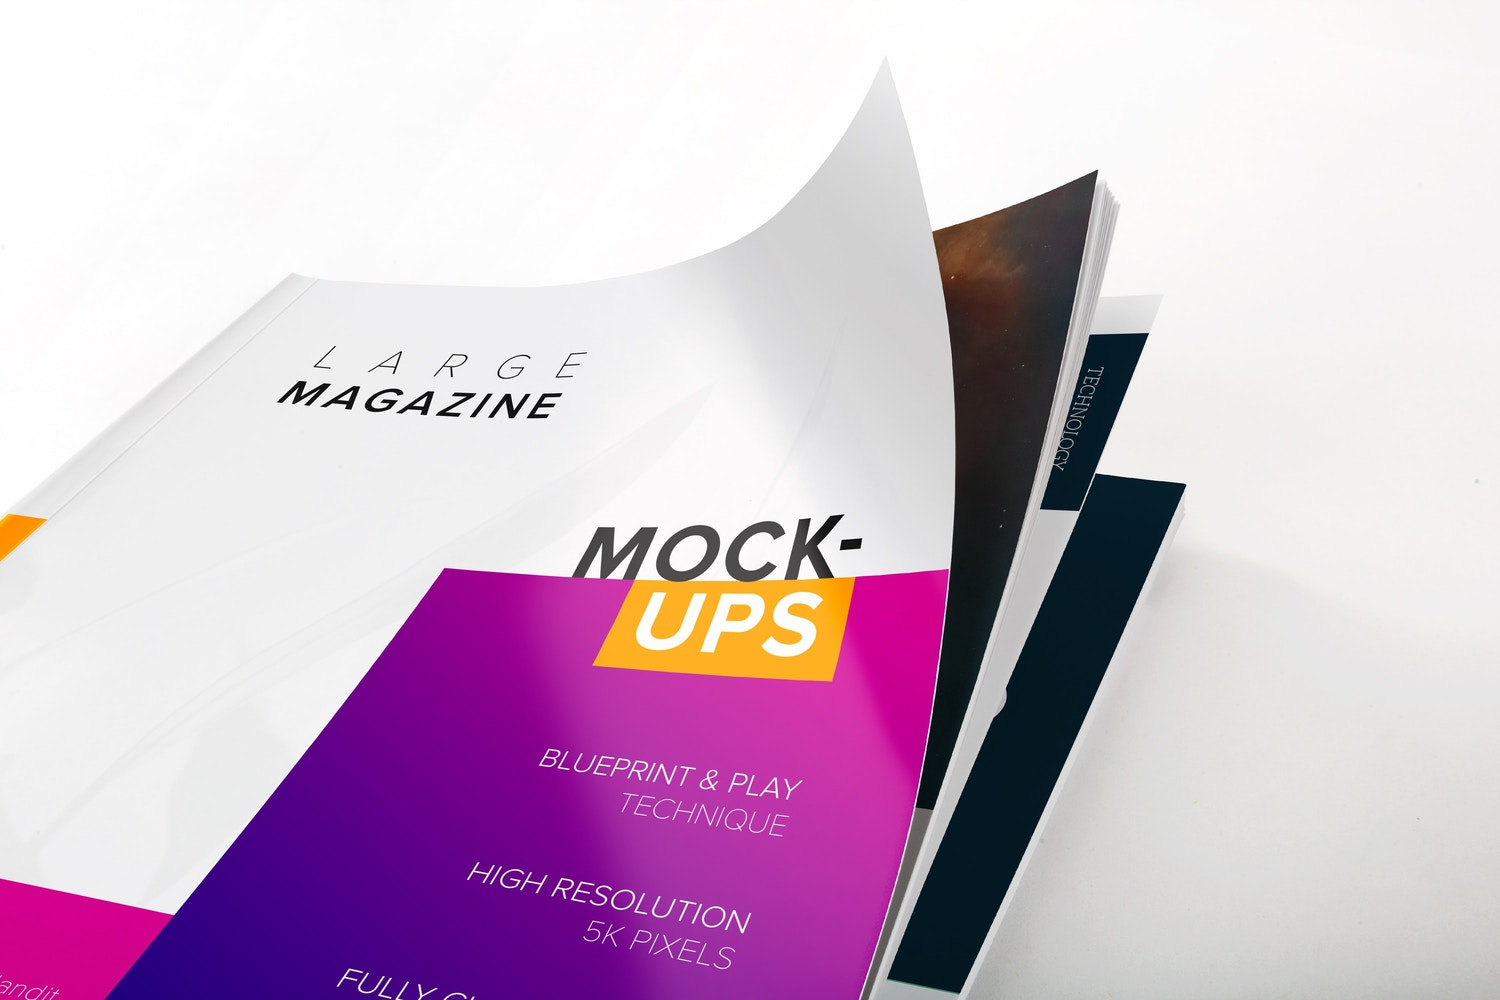 Large Magazine Cover Close Up View Mockup 01 by Original Mockups on Original Mockups